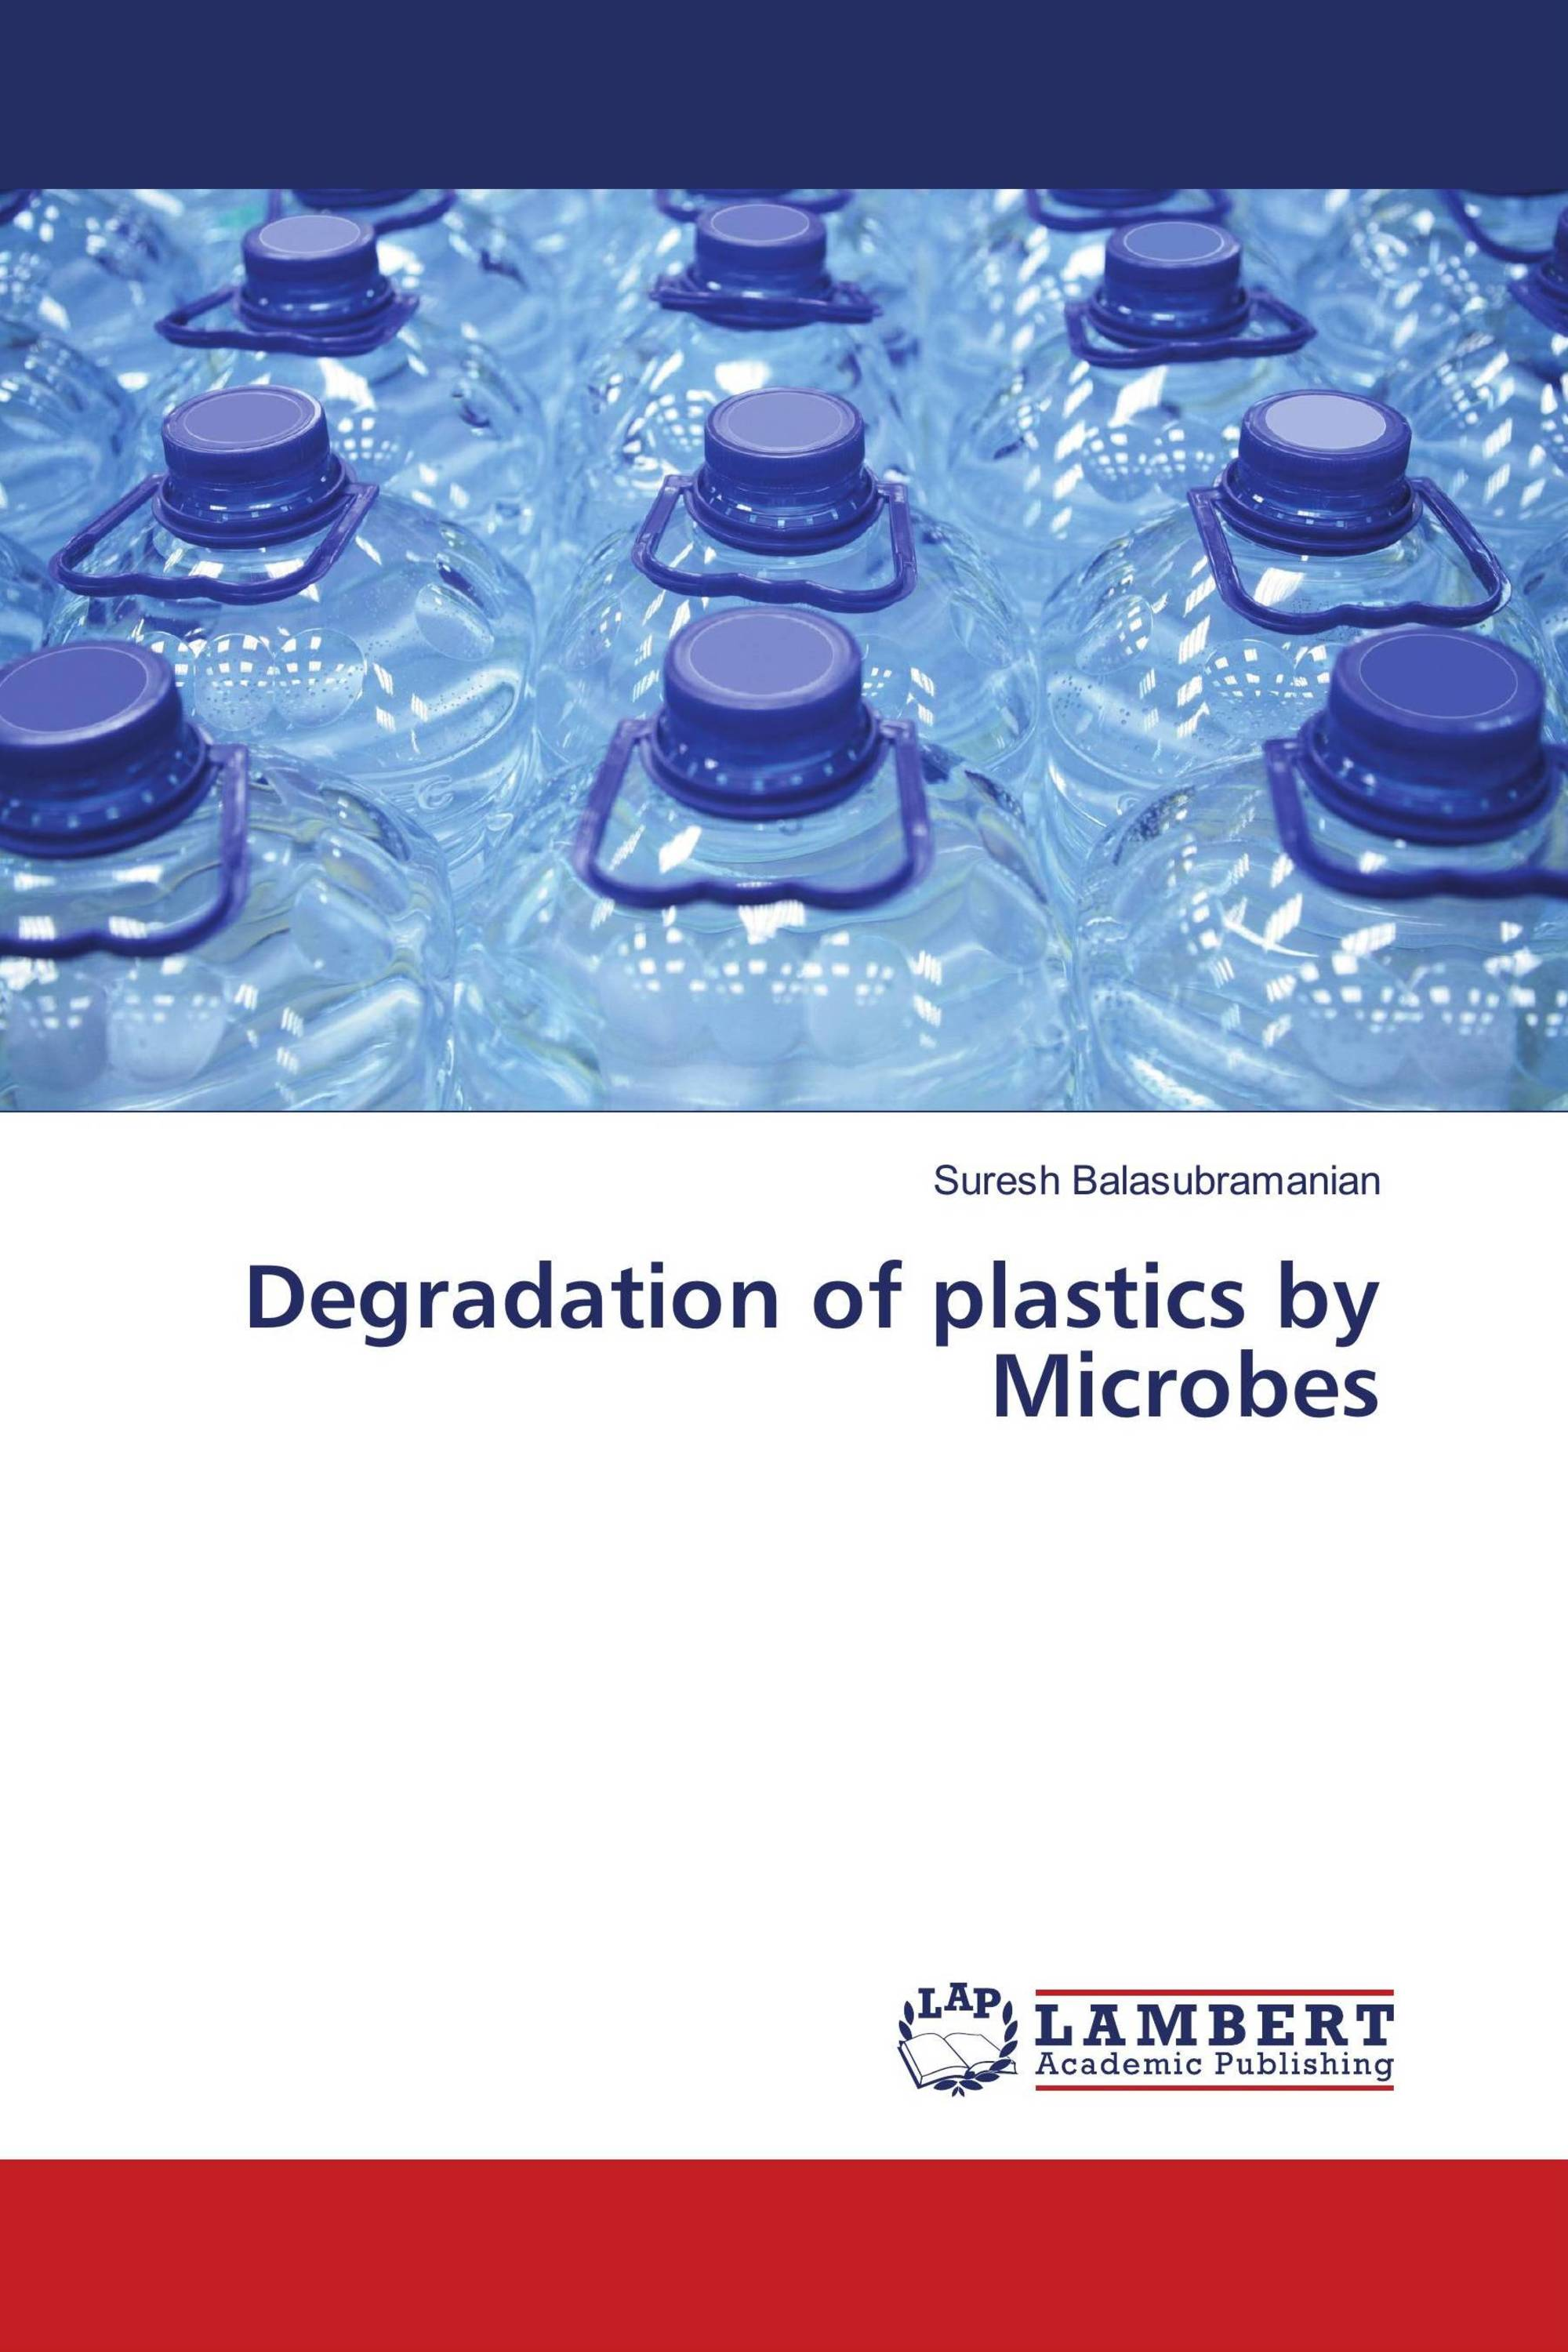 Degradation of plastics by Microbes